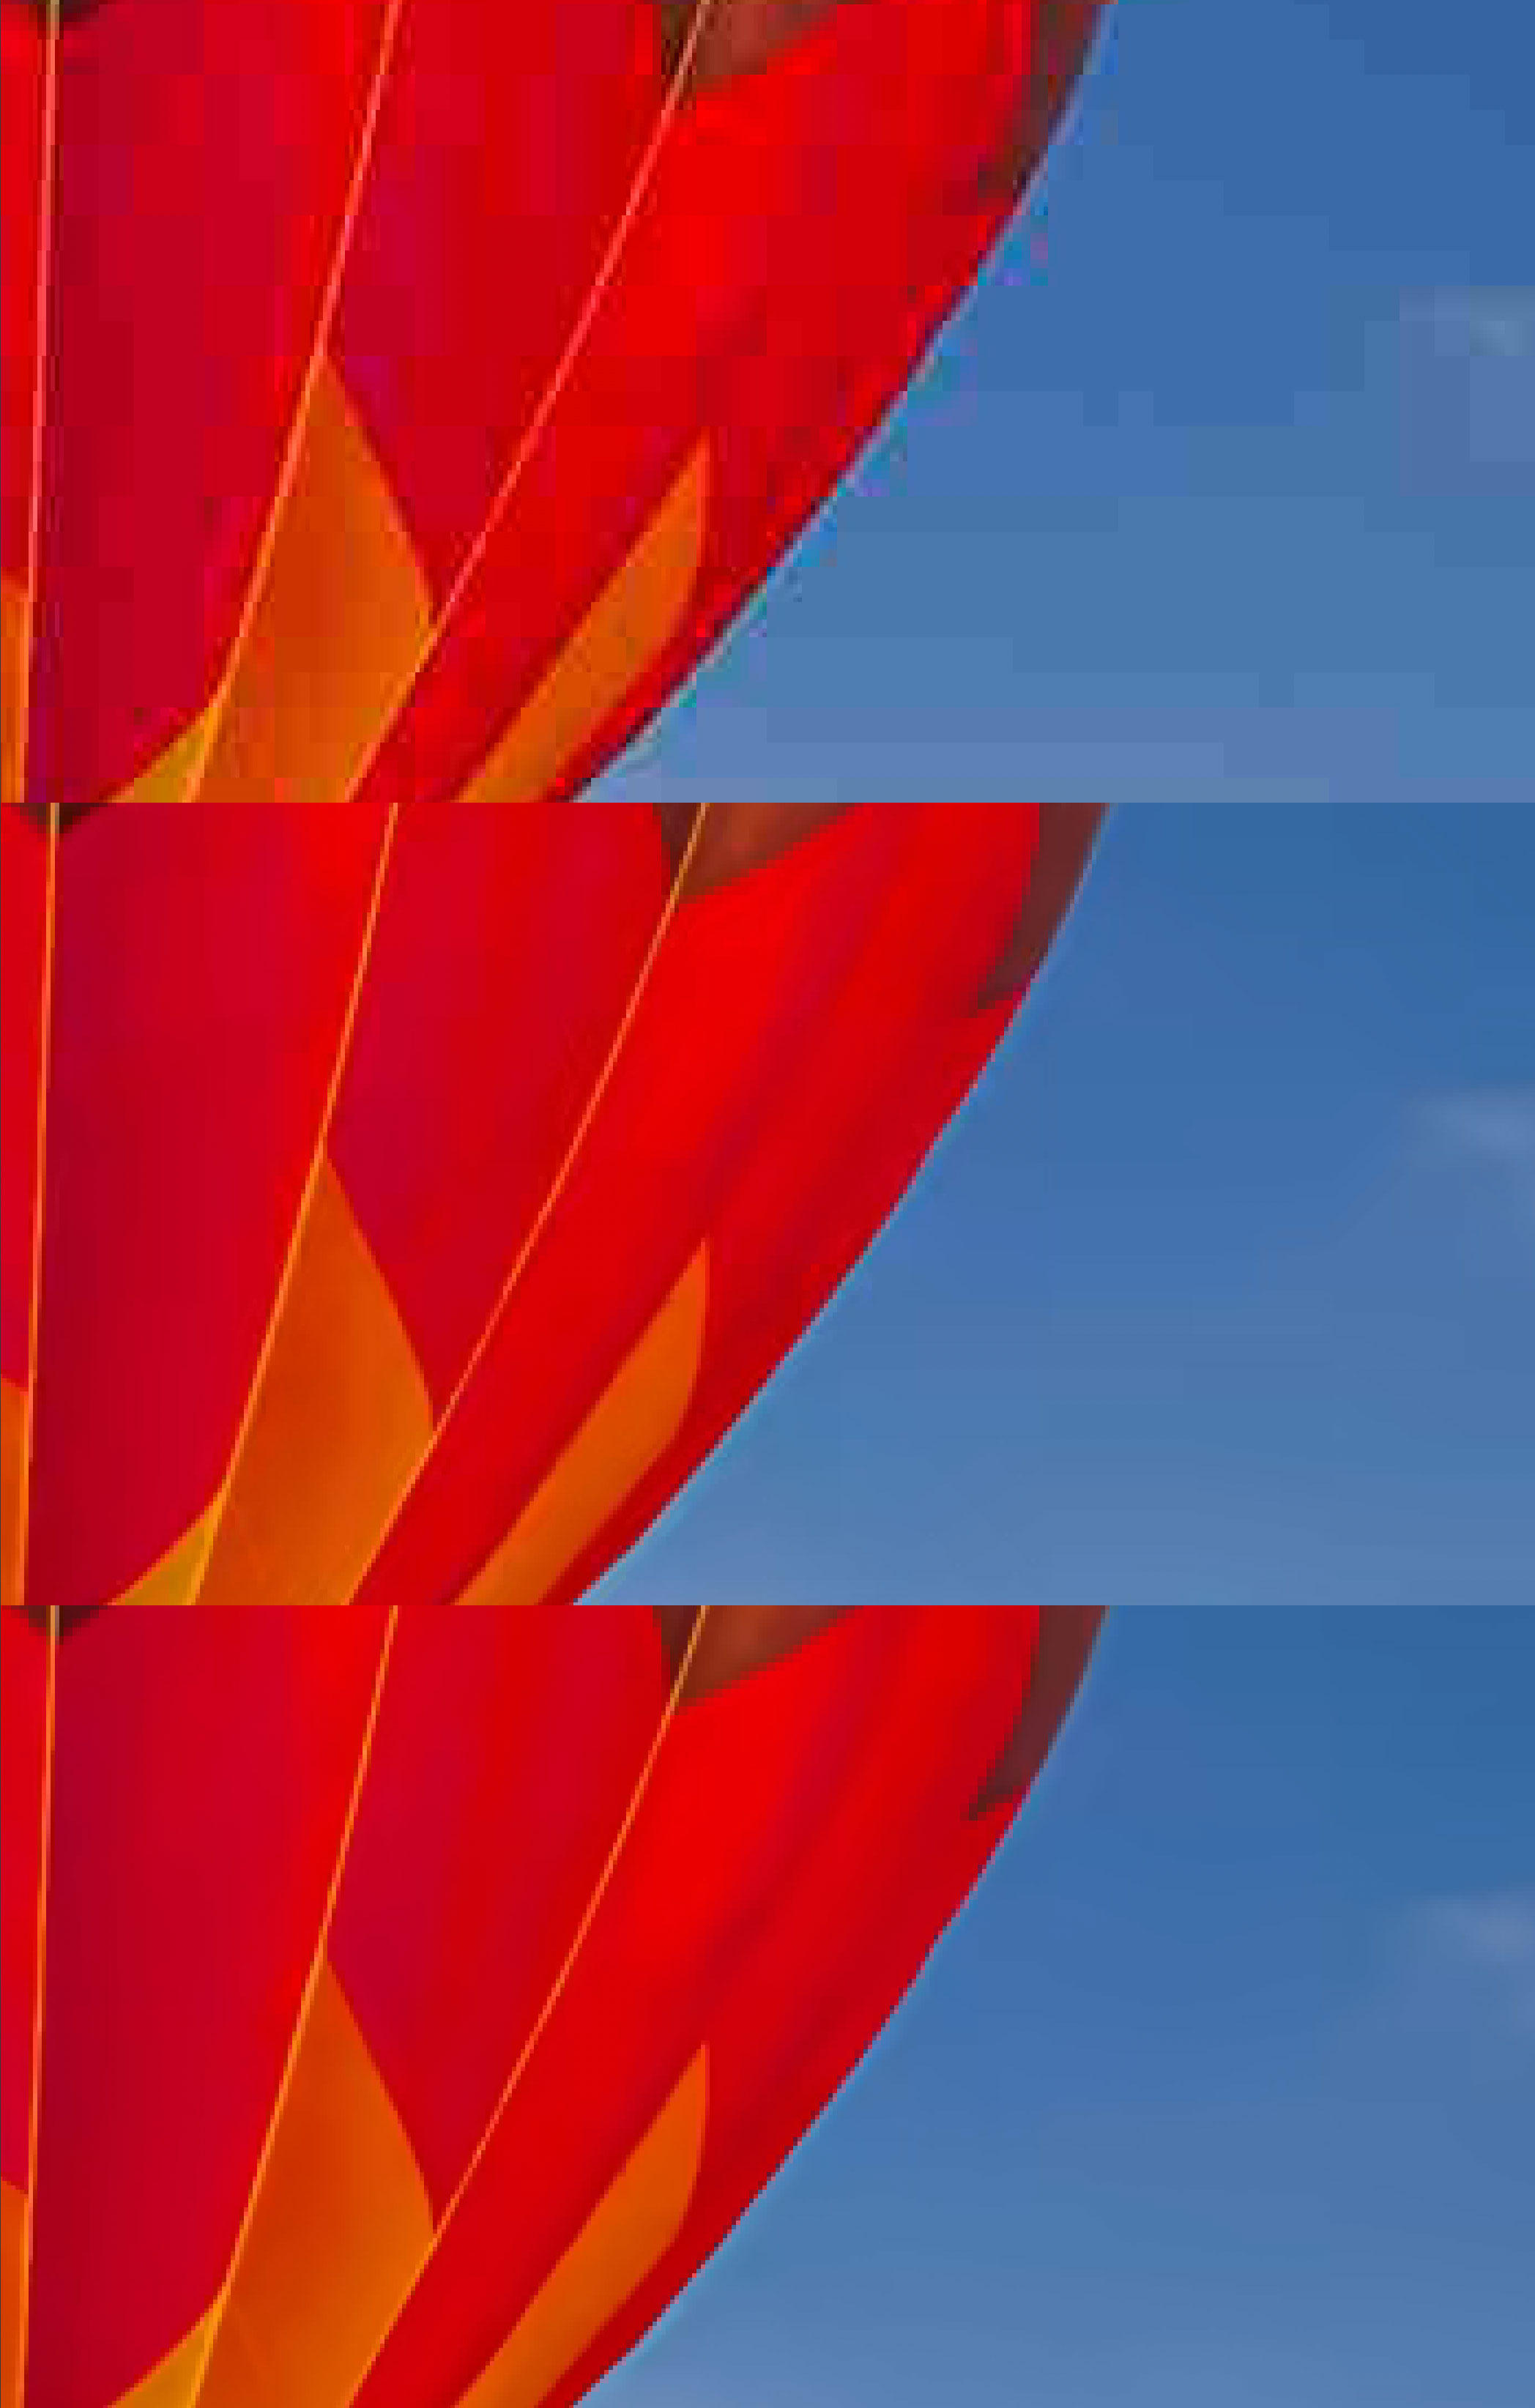 This close-up view of the above balloon image, magnified by a factor of 6, shows JPEG's visible problems at top. The technology for Apple's HEIC, center, shows more blotchy artifacts along edges than the compression for the AV1 video technology, bottom.